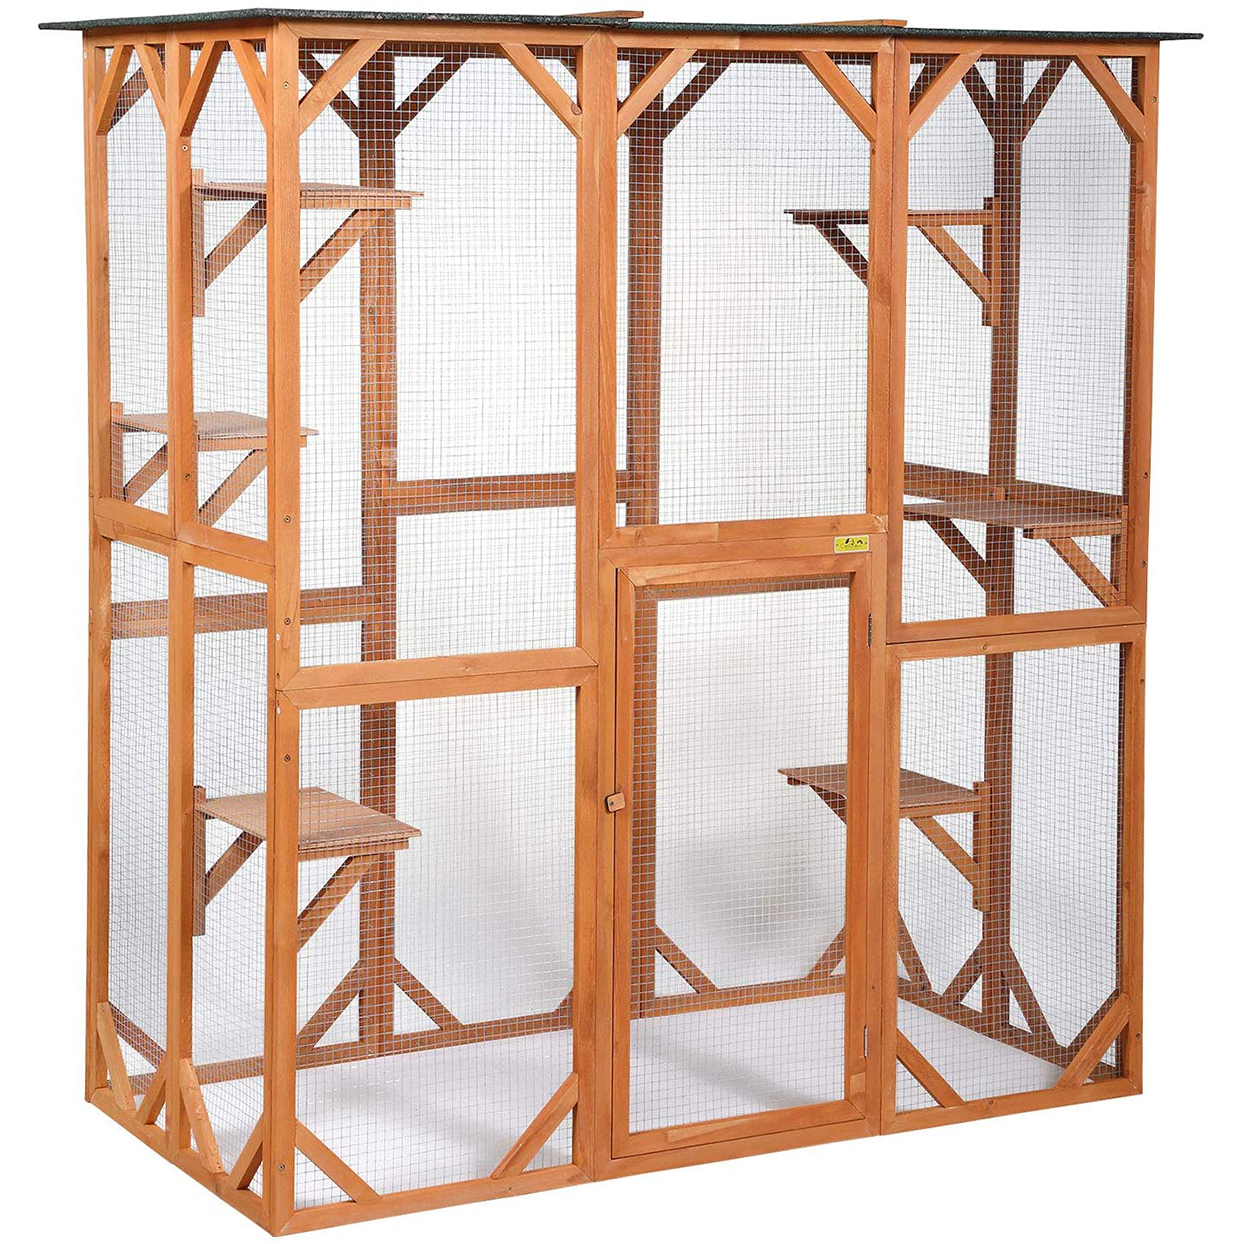 Large wooden outdoor cat enclosure